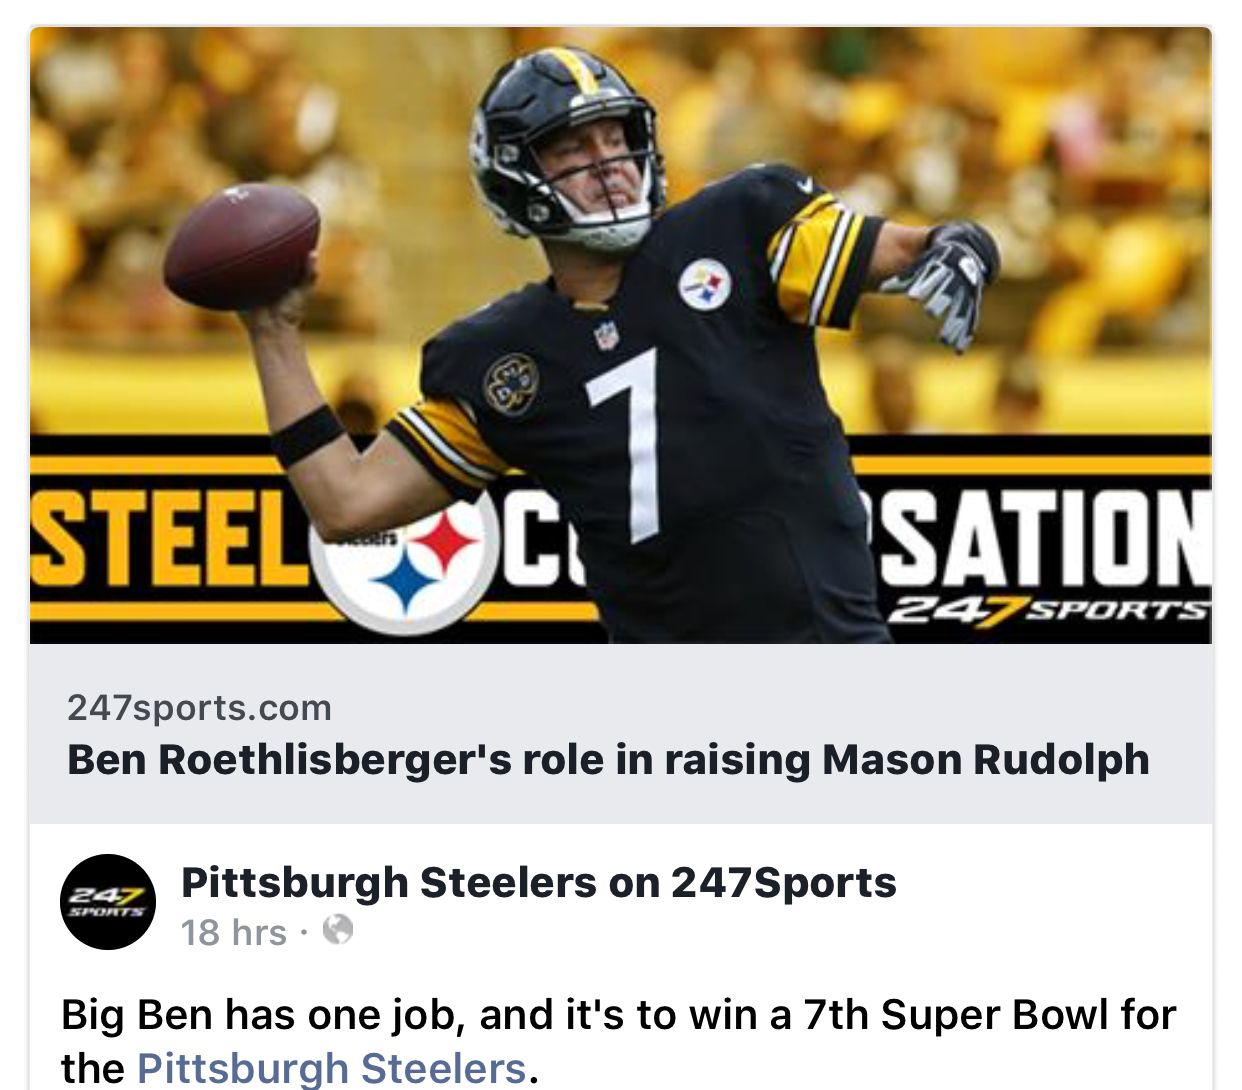 Pin by Sami Yarlett on Steelers/football (college/nfl